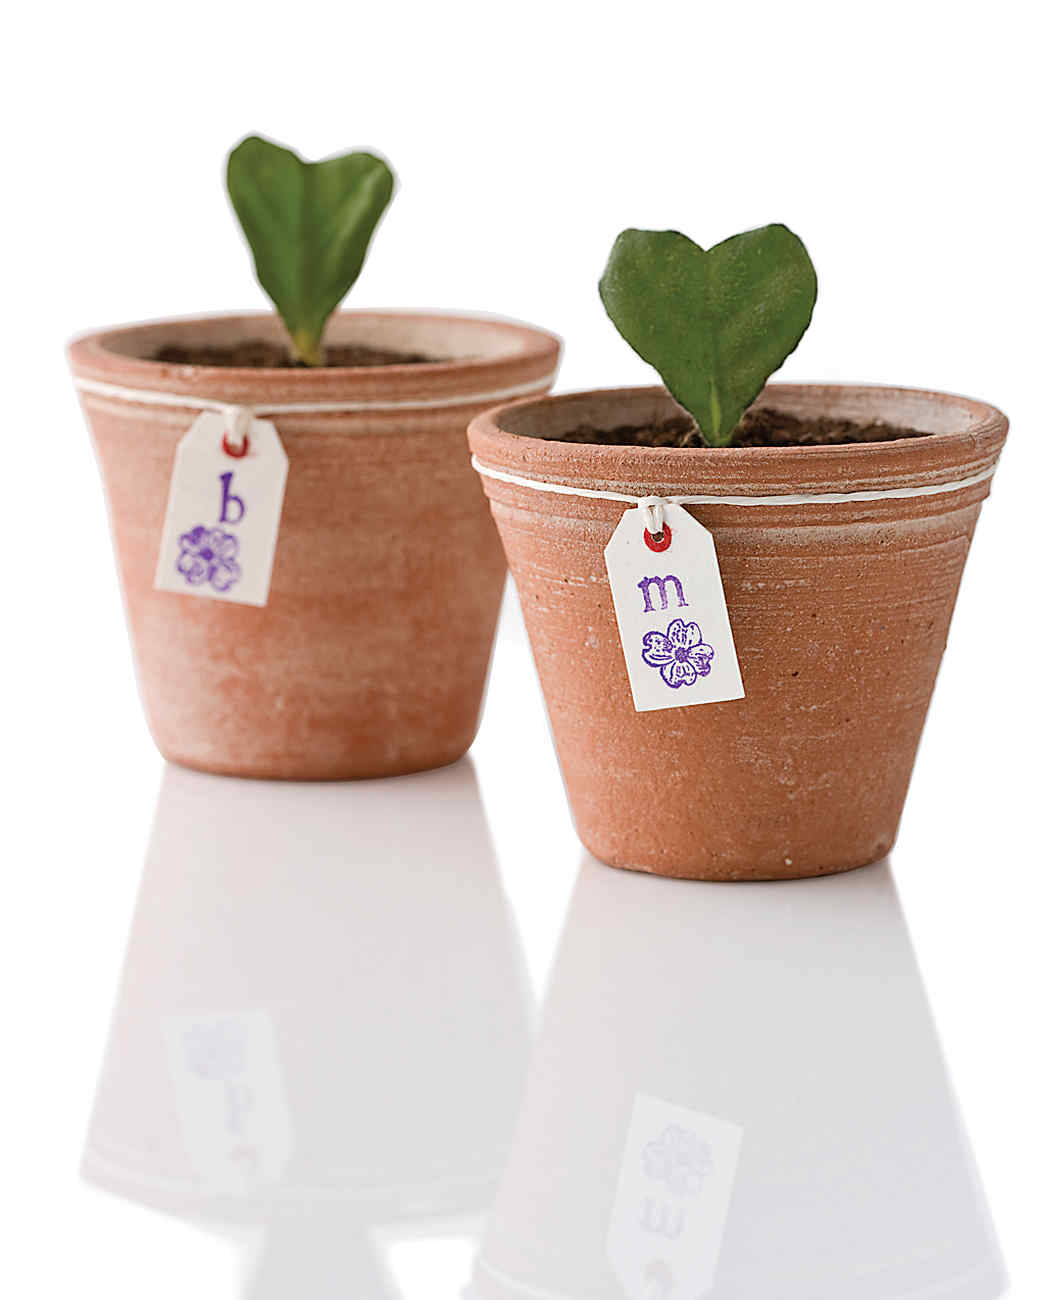 Heart-Shaped African Violets